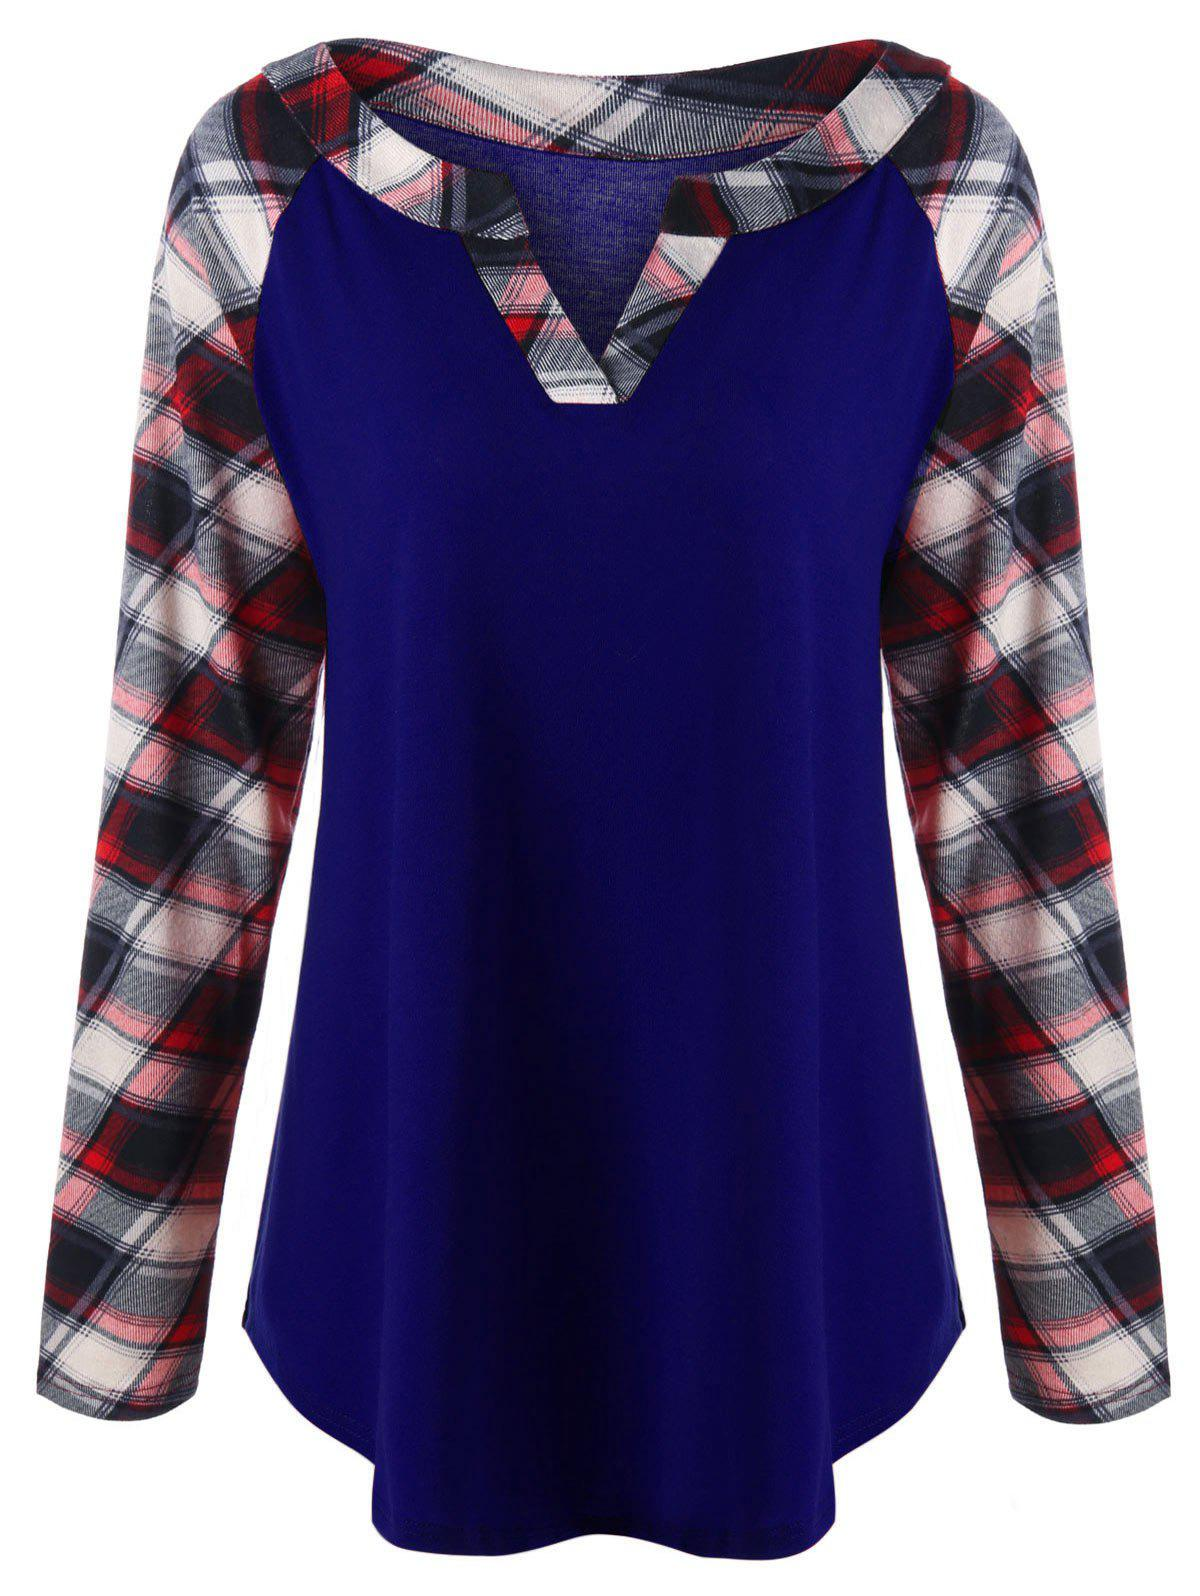 856fc5febe559 42% OFF   2018 Plus Size Raglan Sleeve Plaid T-shirt